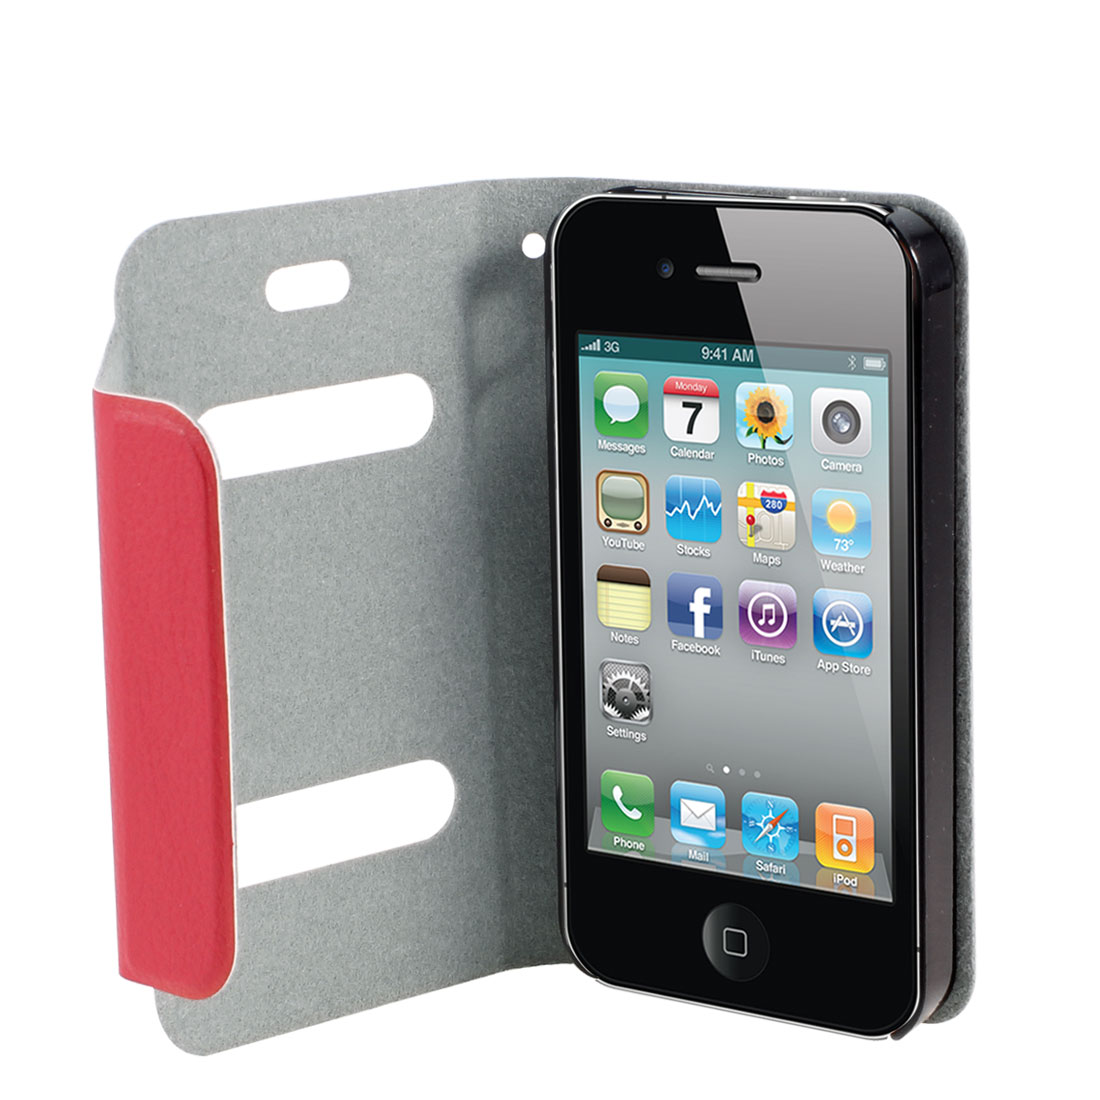 Red PU Leather Protective Magnetic Closure Flip Case Cover for iPhone 4 4G 4S